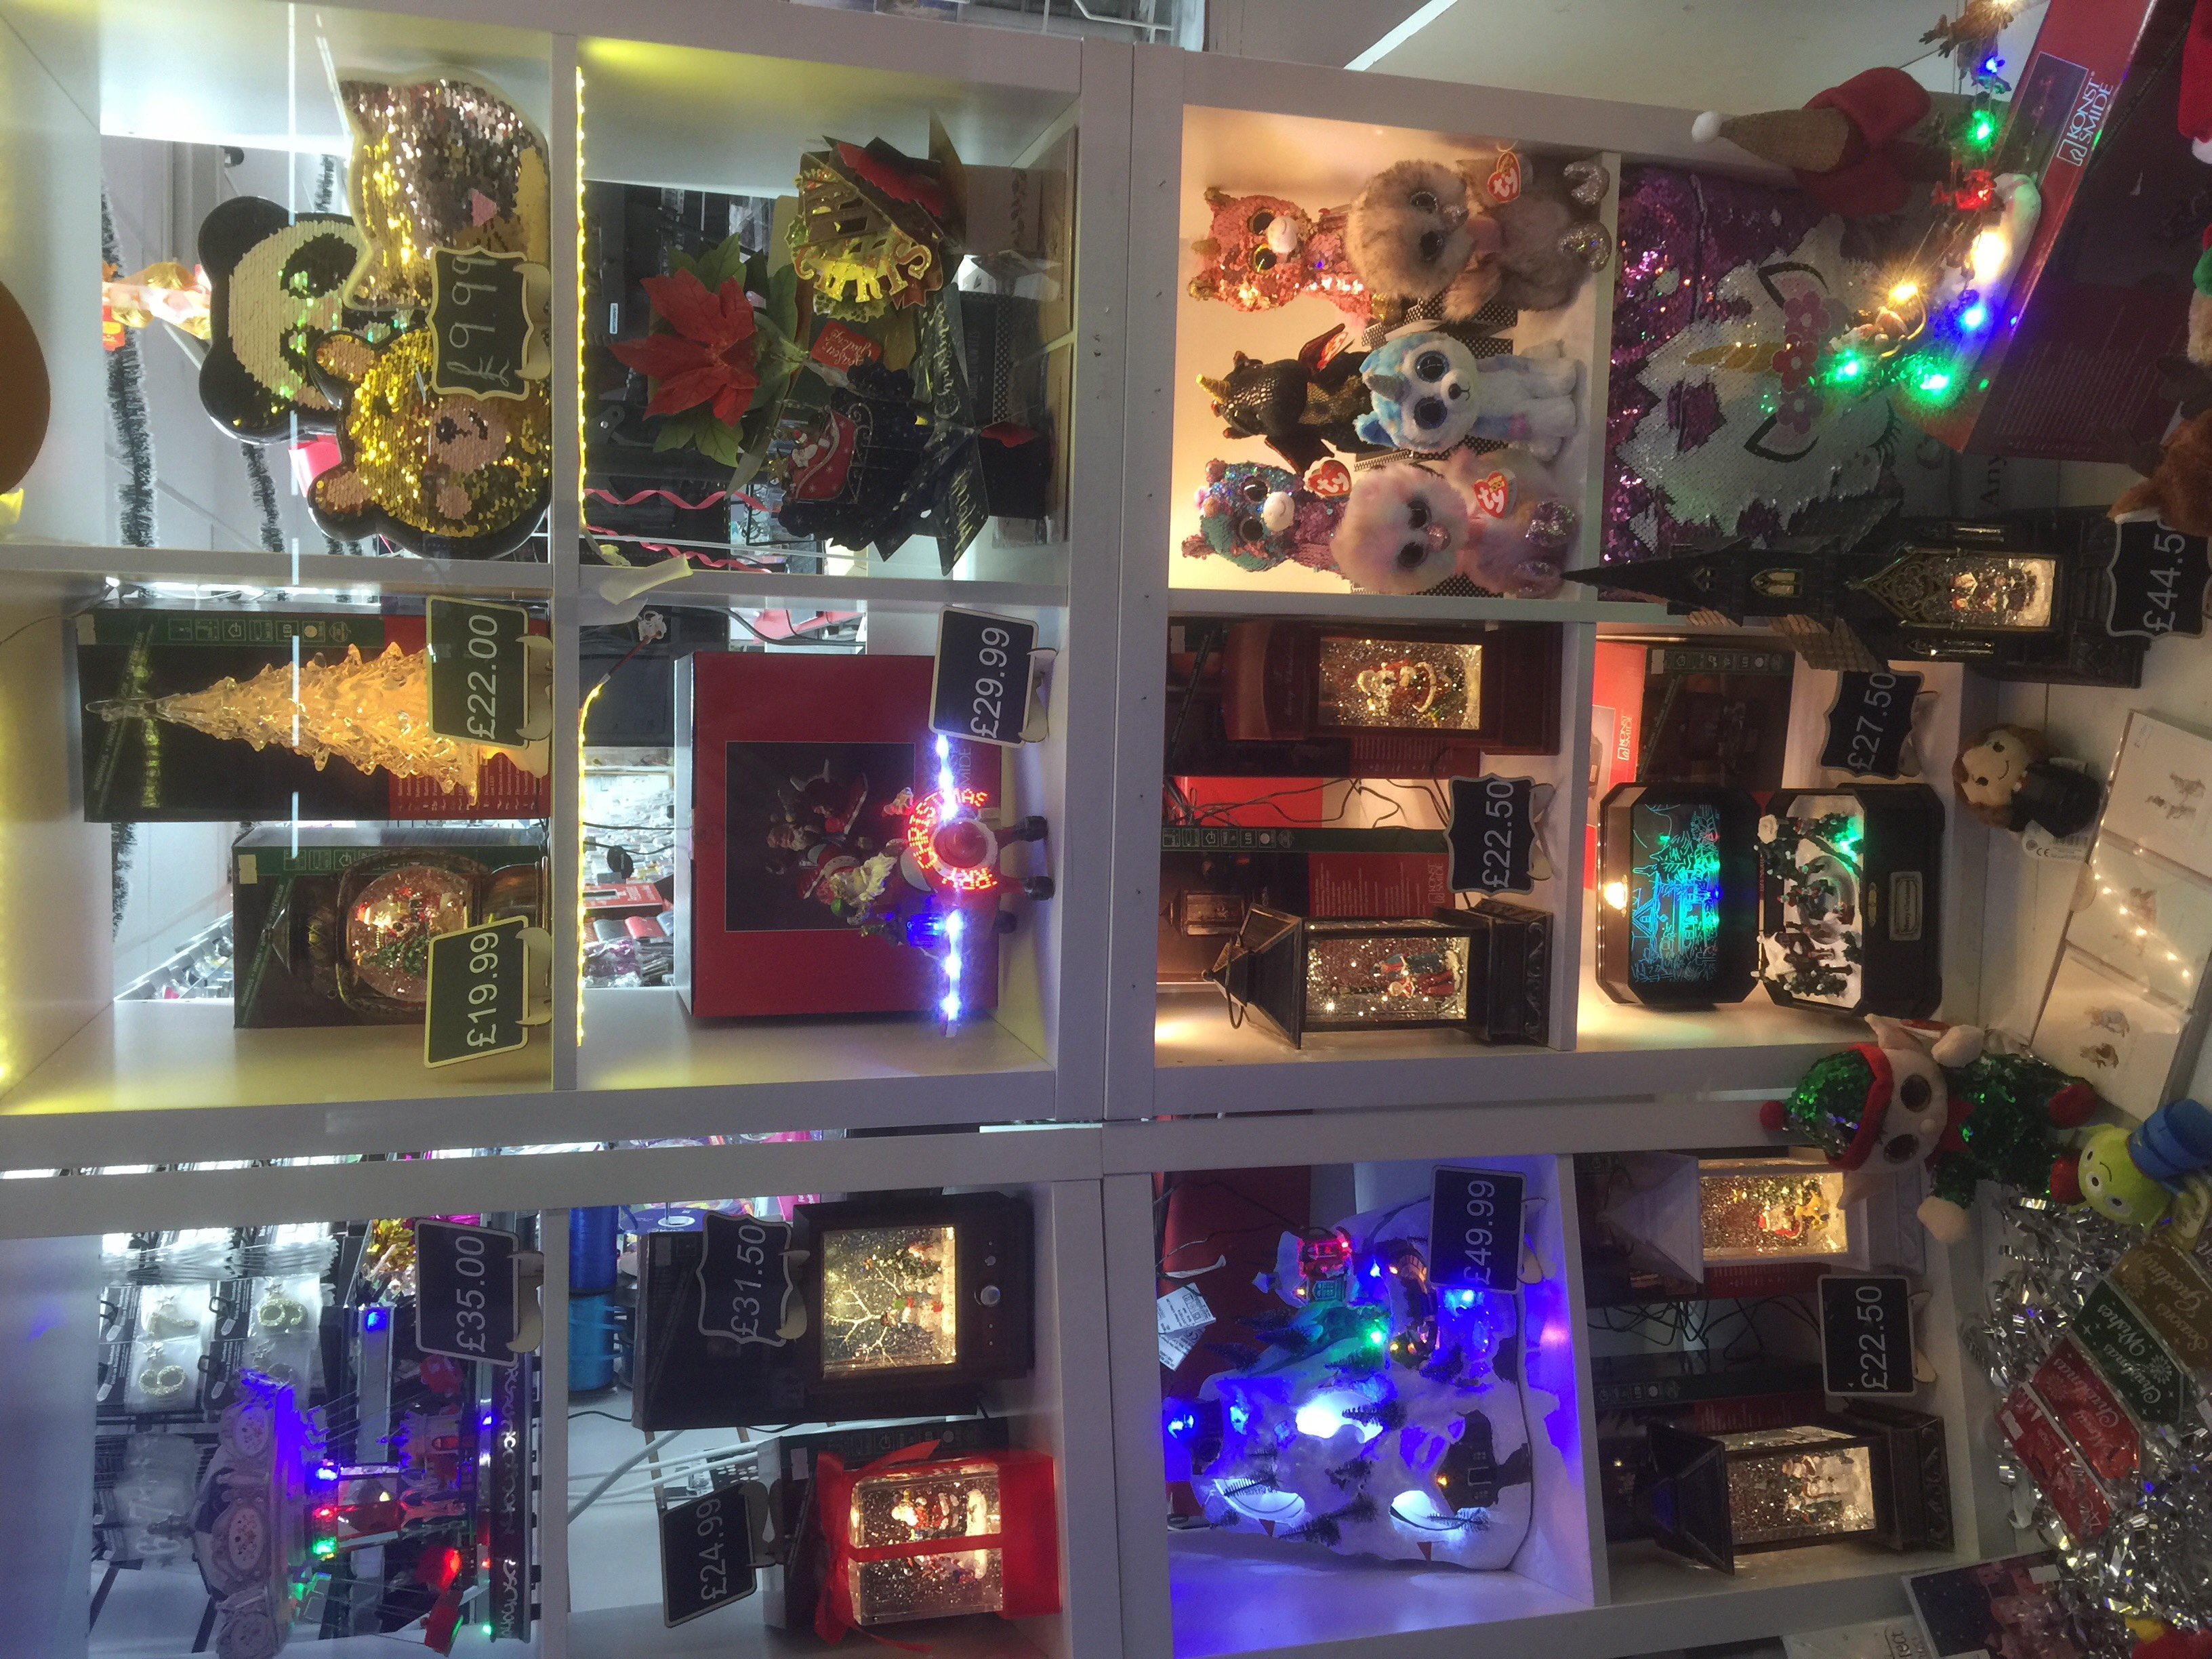 Above: An illuminated Christmas scene in Cards & Gifts.